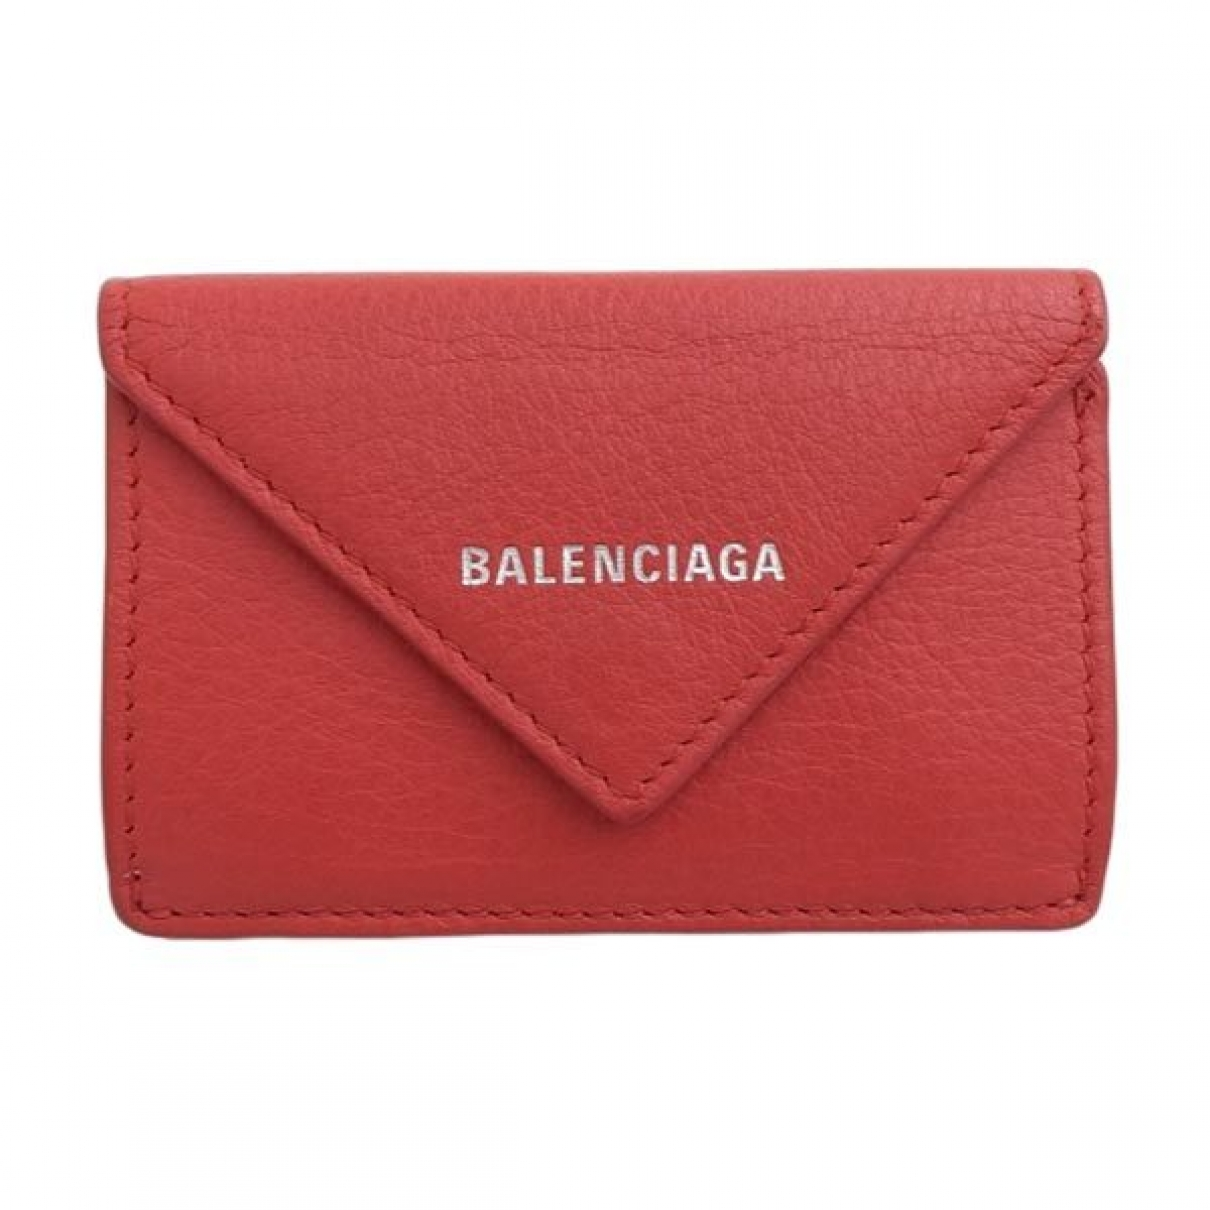 Balenciaga \N Red Leather wallet for Women \N